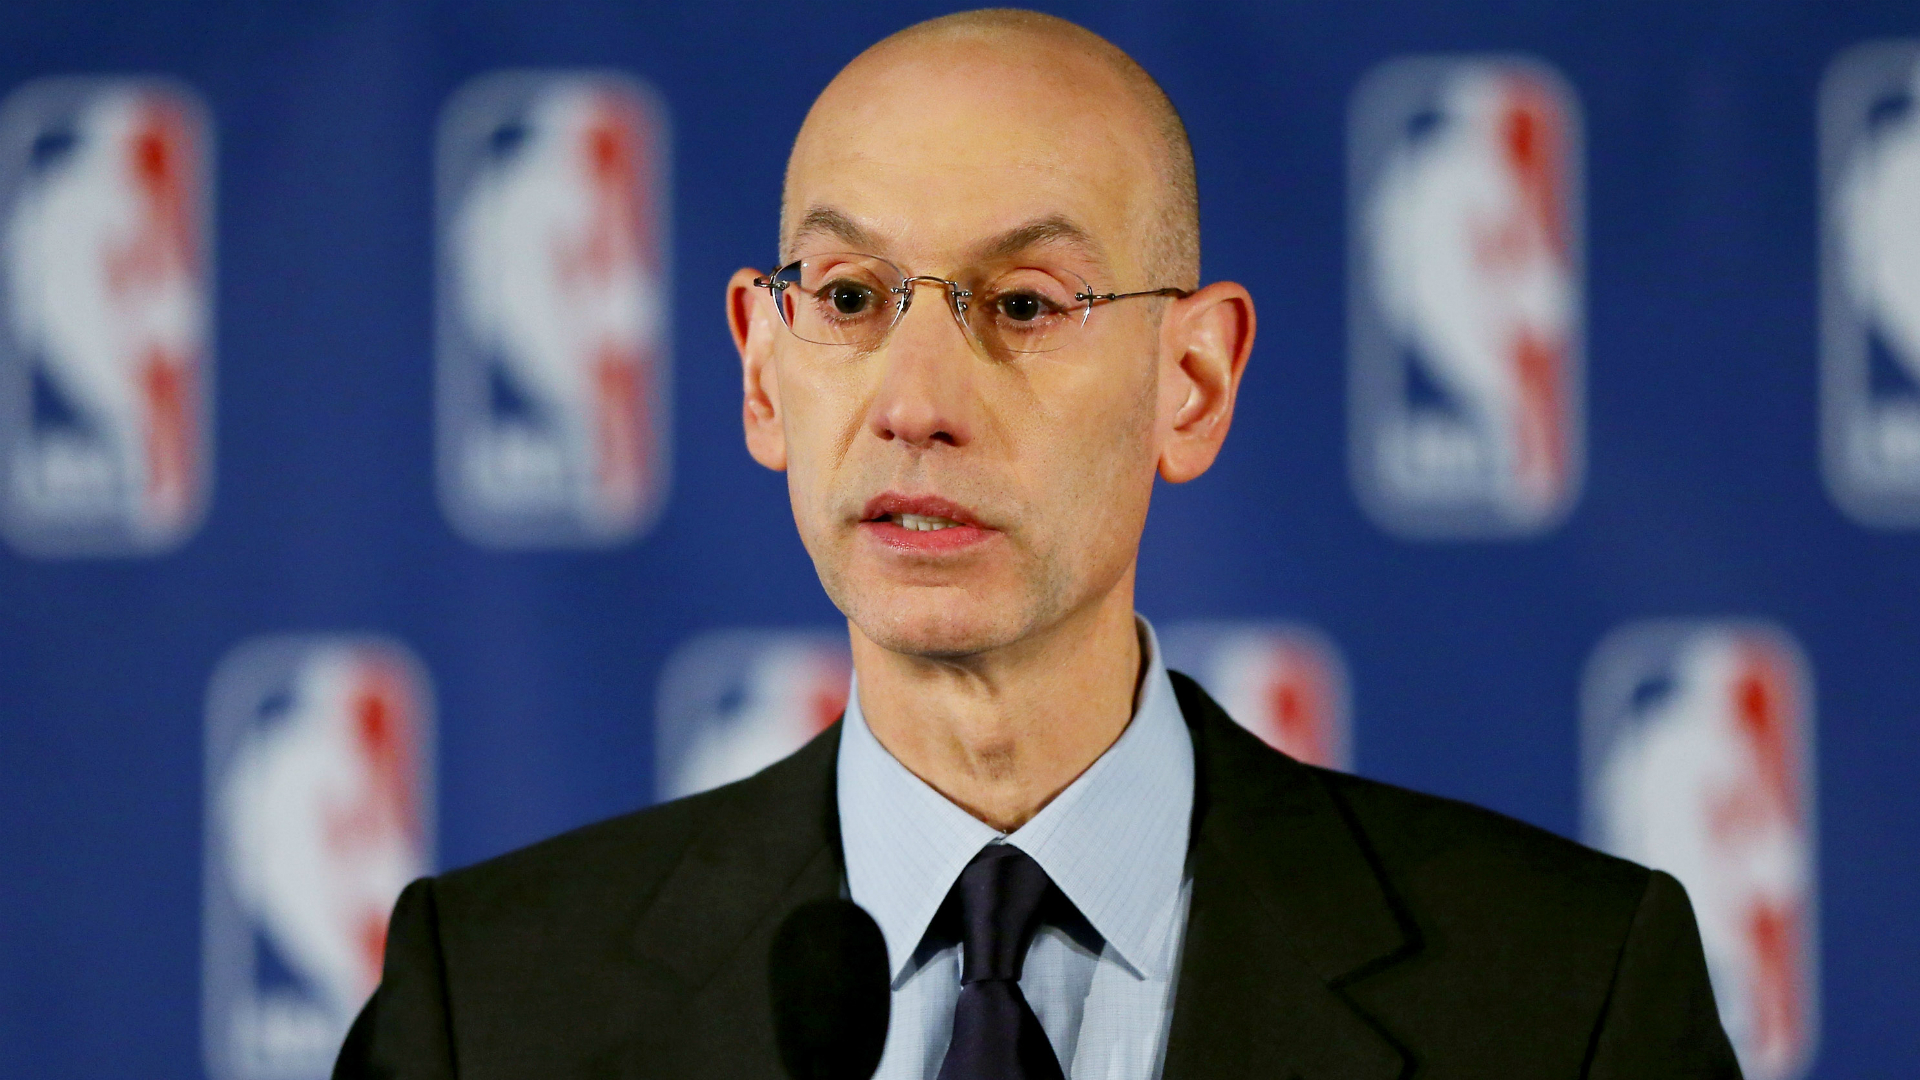 NBA considers speeding up game endings to cater to 'increasingly short attention spans'